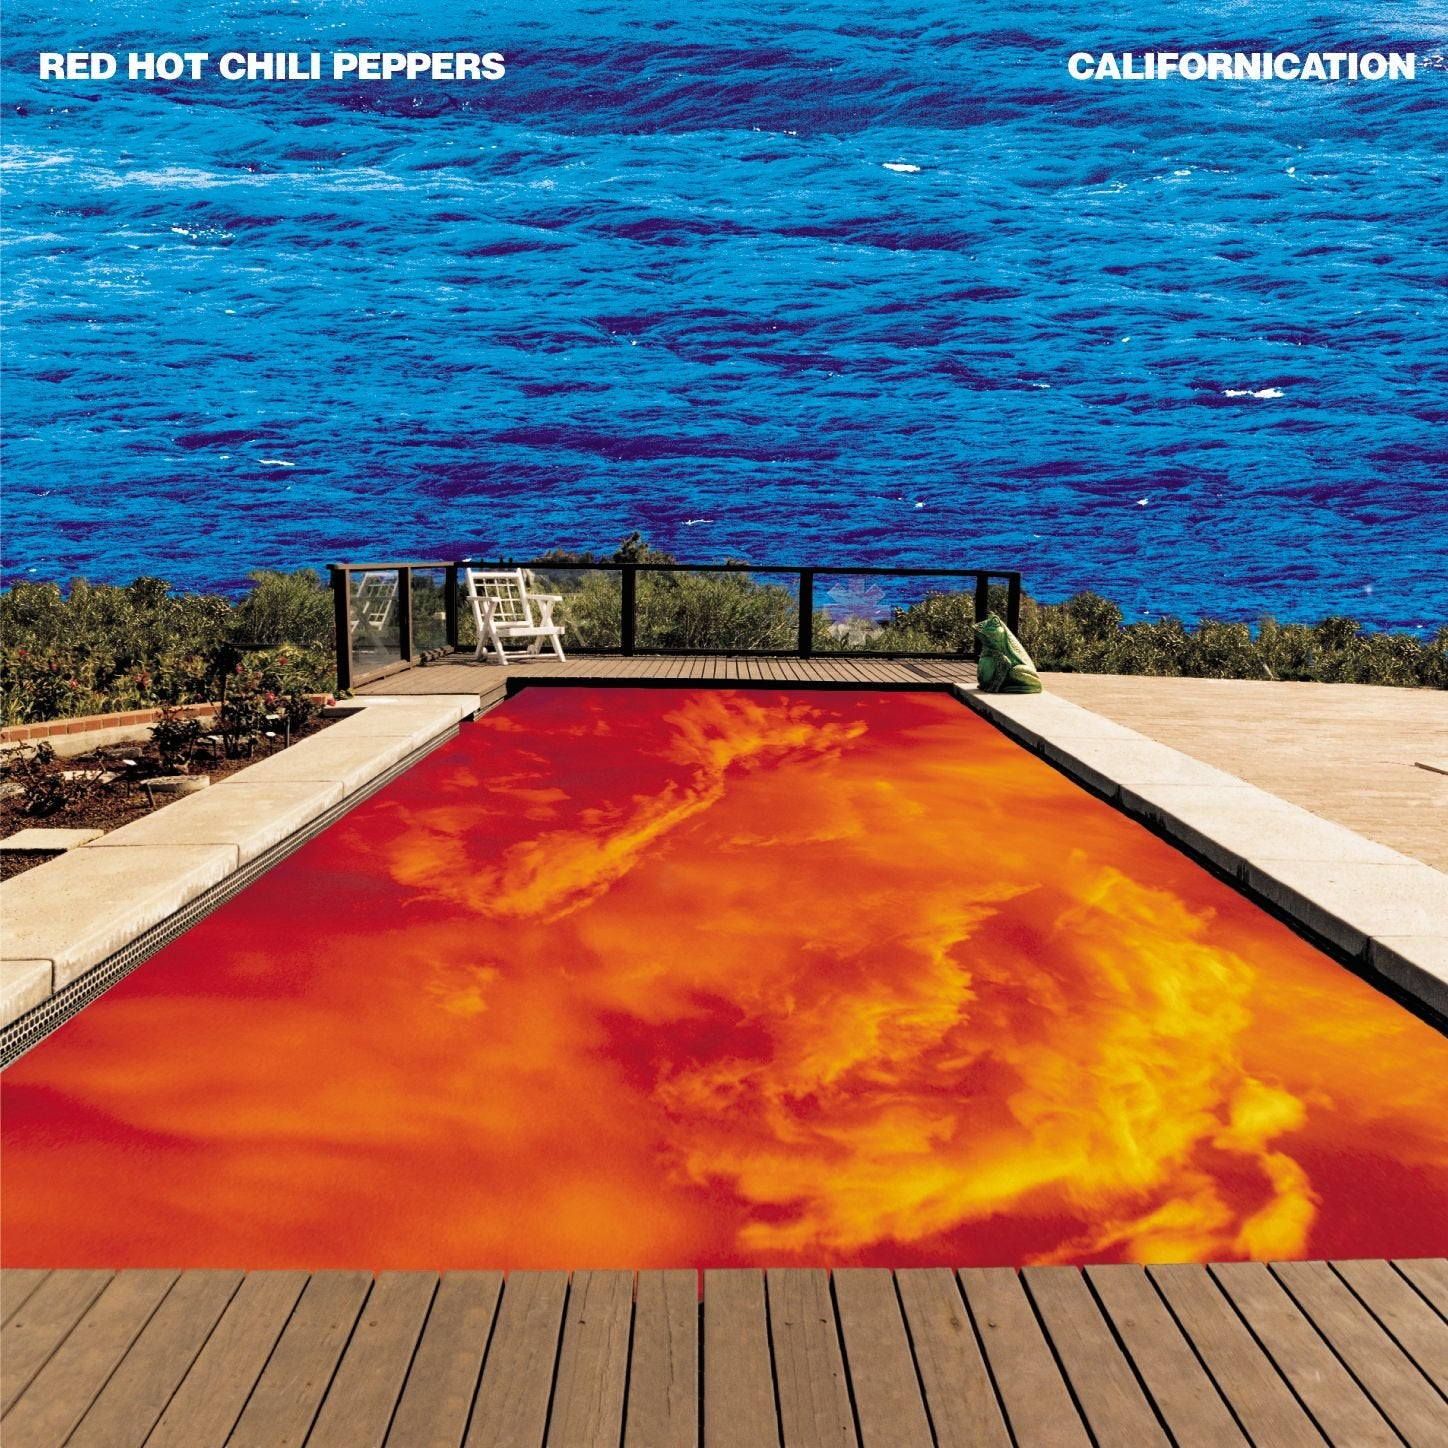 Californication - Red Hot Chili Peppers - Gears For Ears